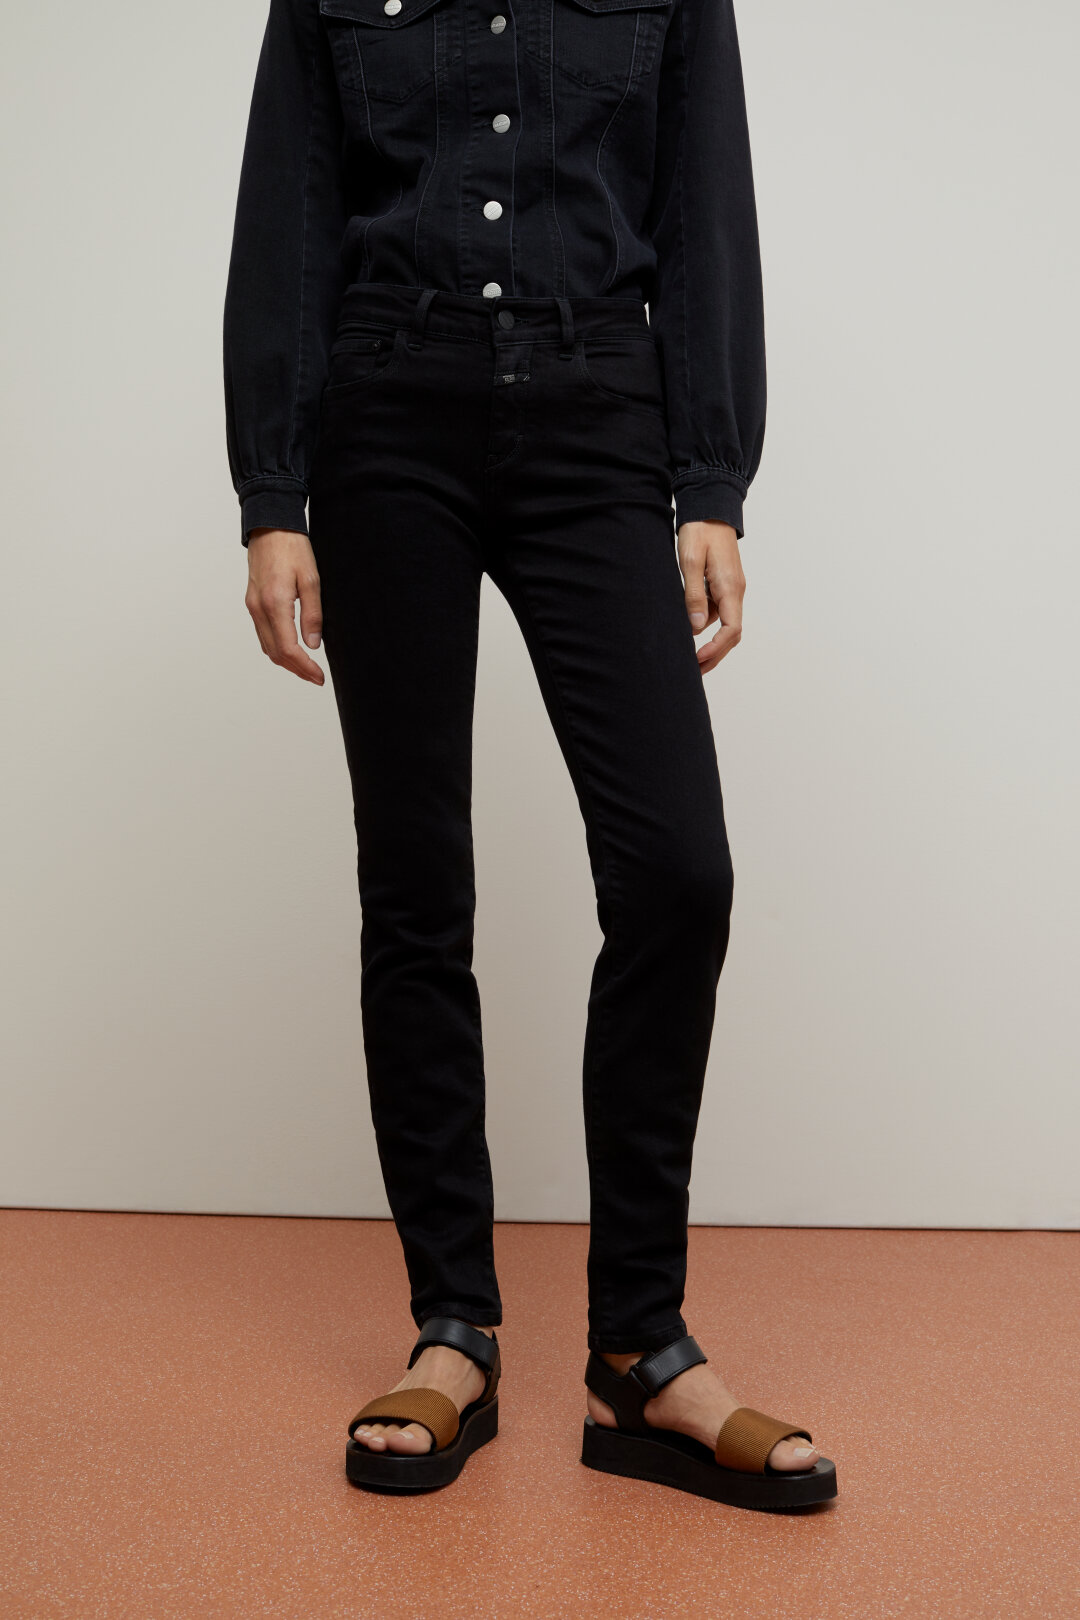 Baker Long Super Stretch Black Denim